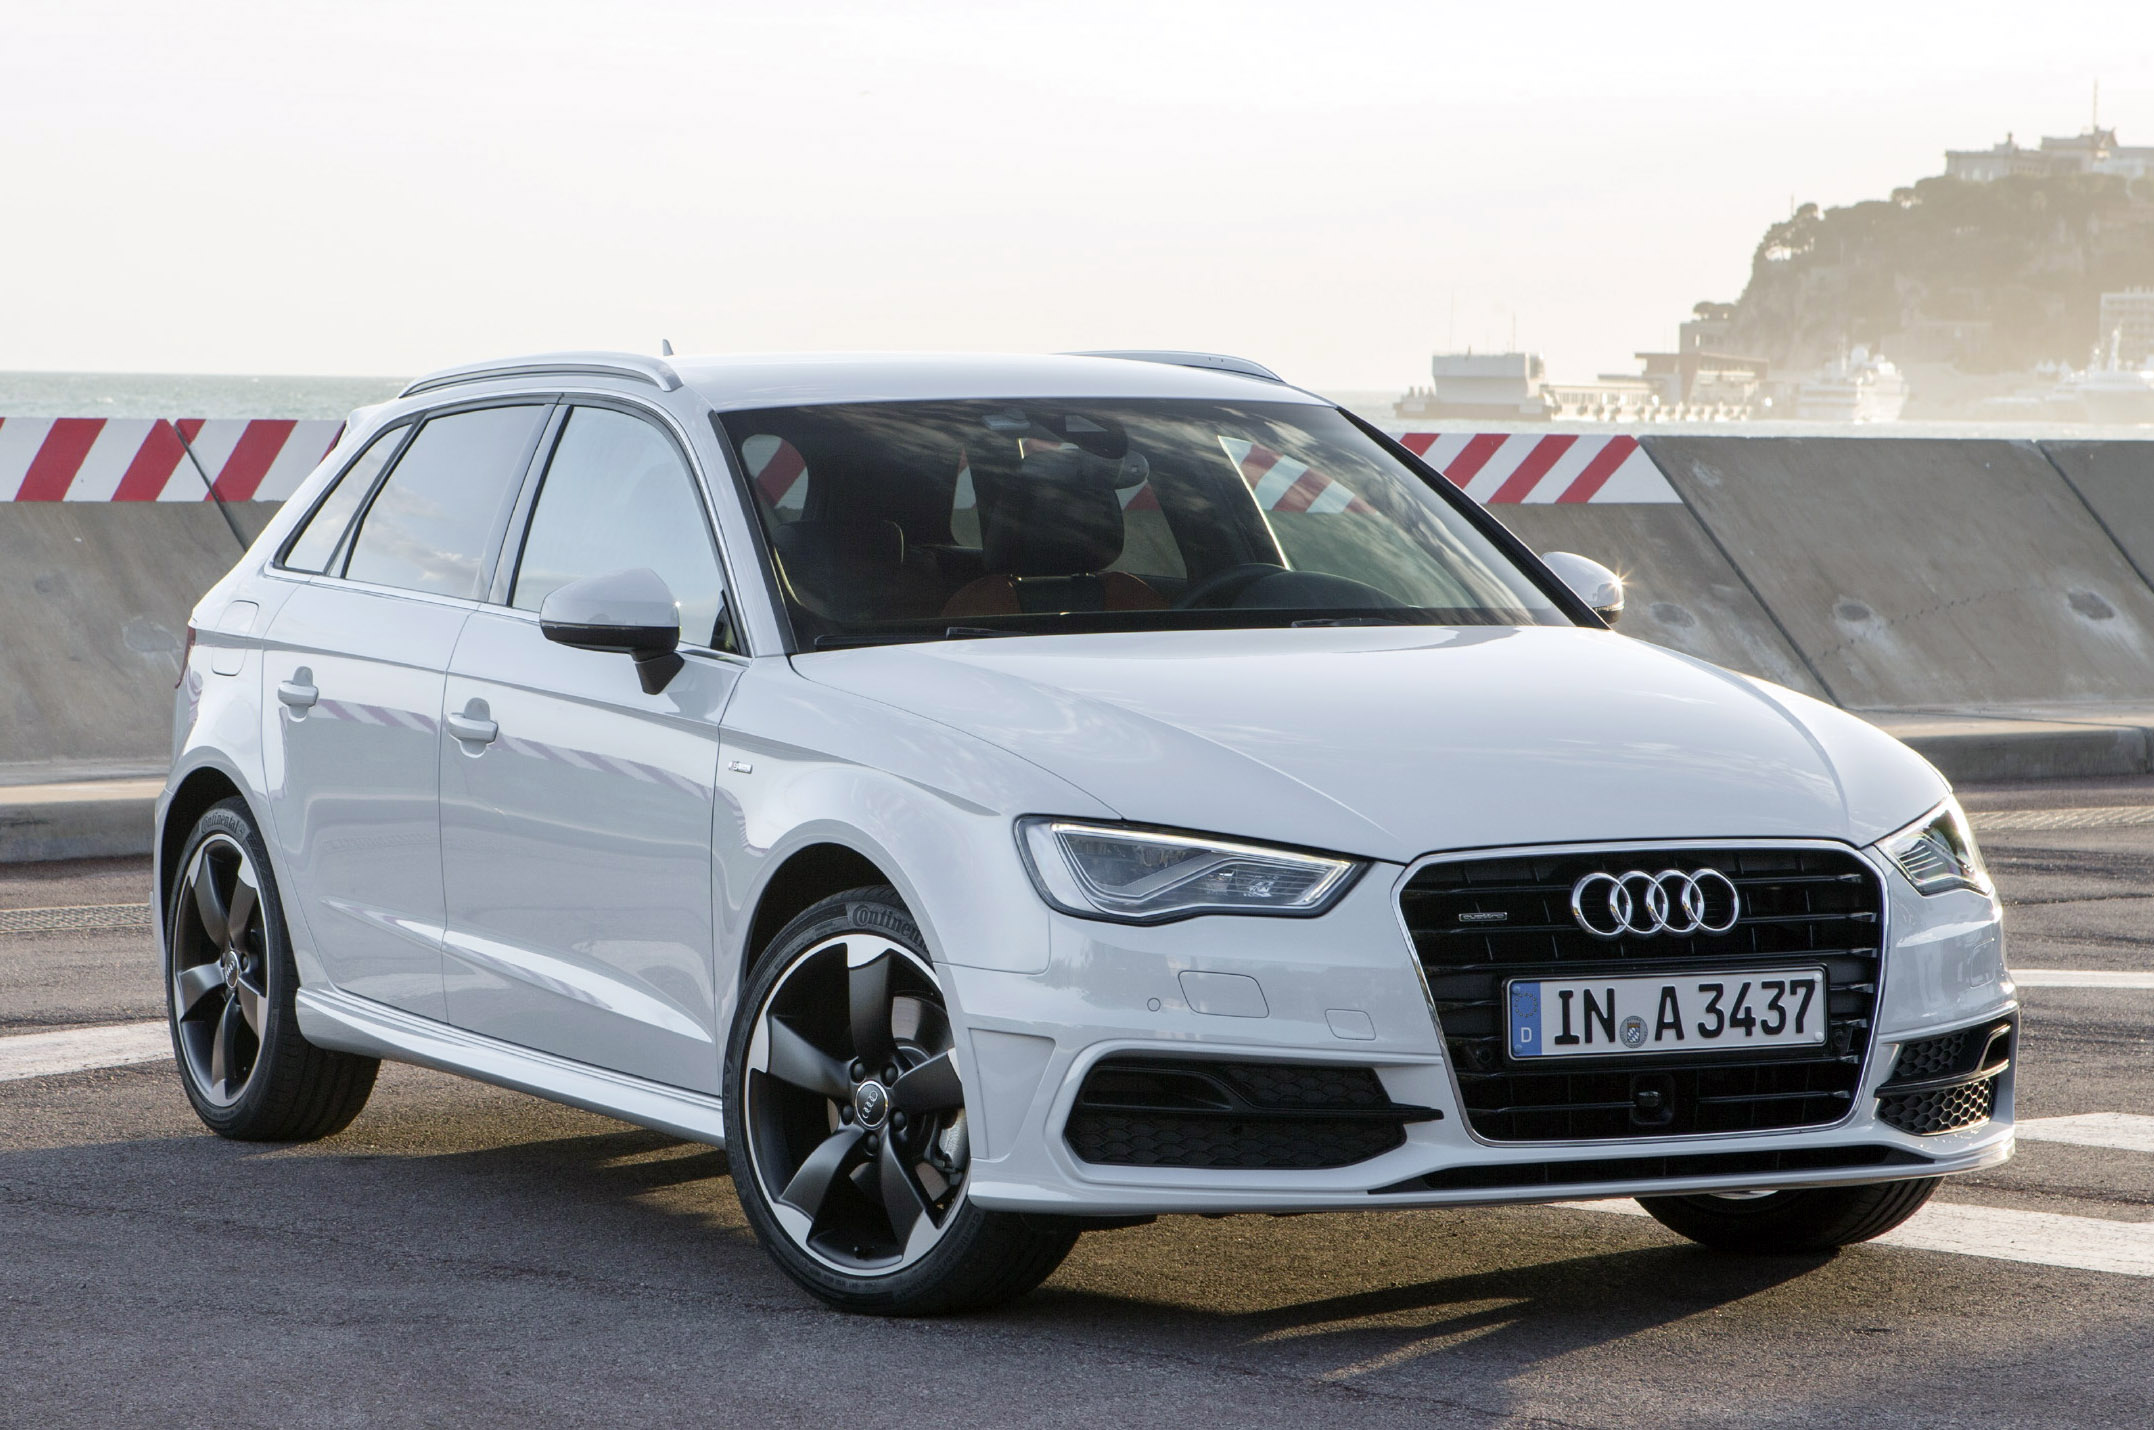 Used Audi S3 For Sale  CarGurus